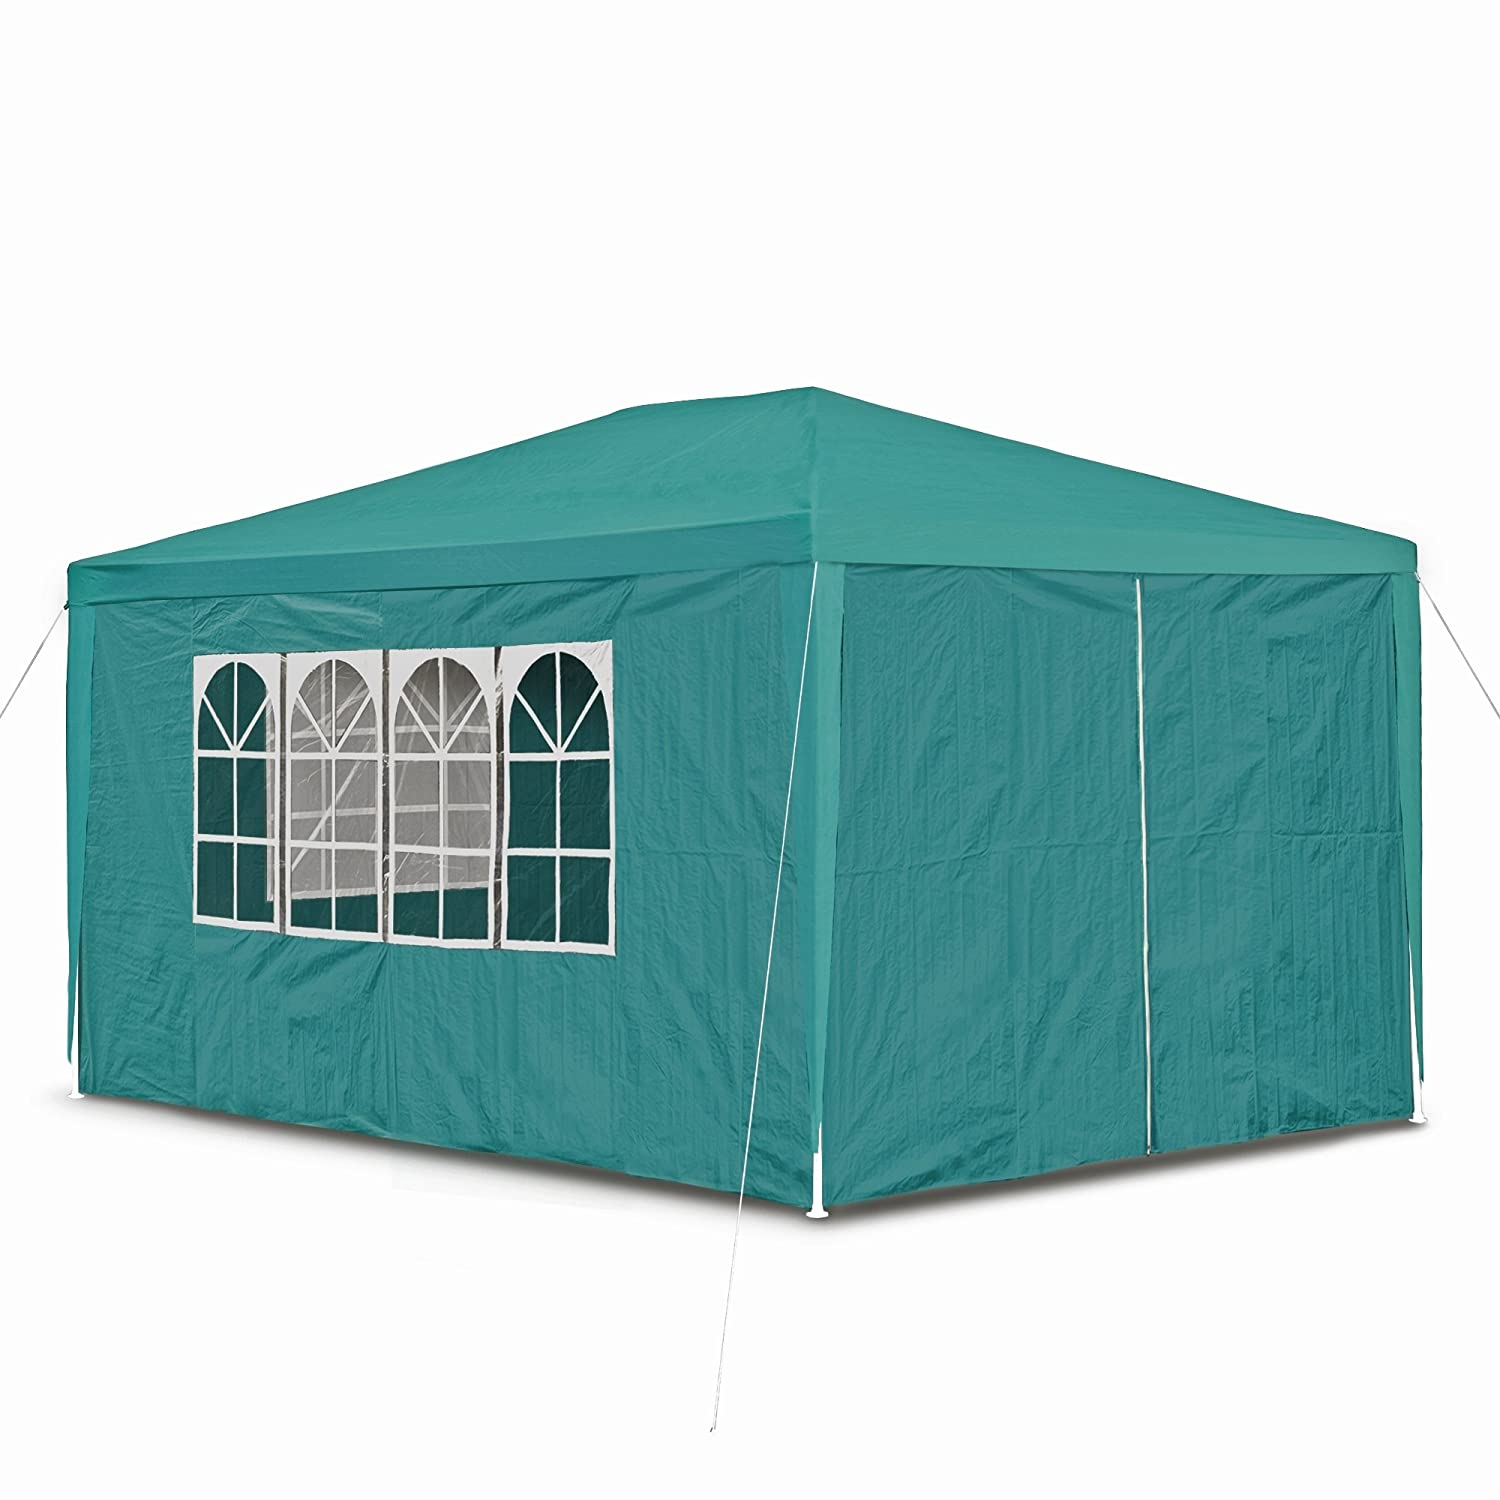 JOM 127294 Gazebo, 3 x 4 m, with 4 sidewalls, 3 windows and 1 door with zipper, PE 100G, green